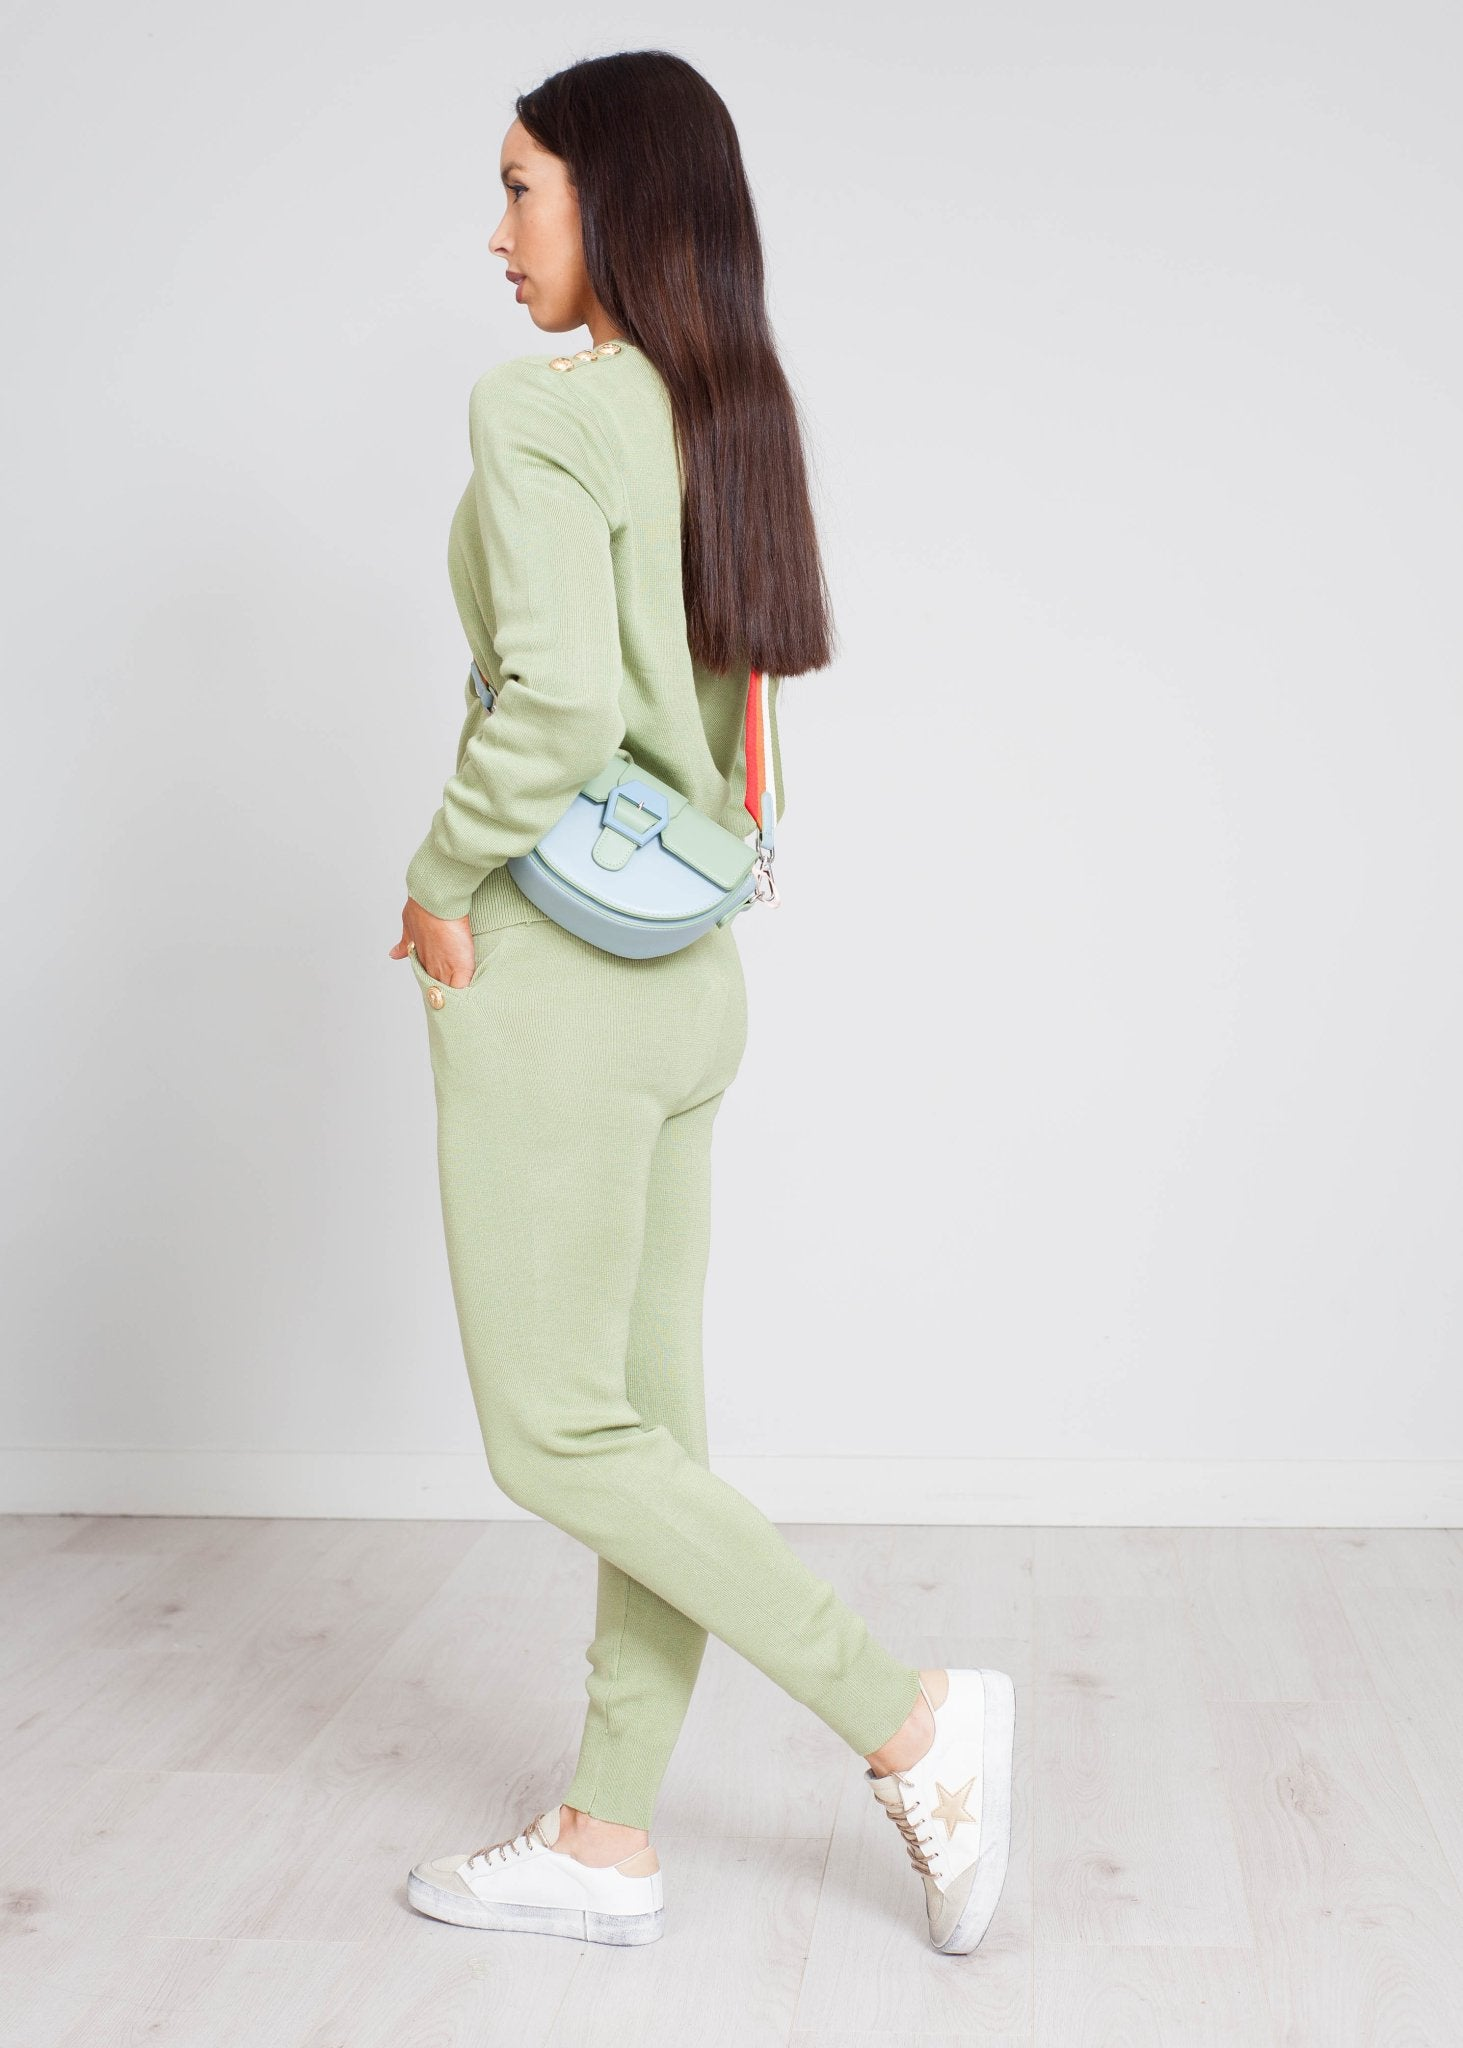 Priya High Waist Lounge Set In Green - The Walk in Wardrobe